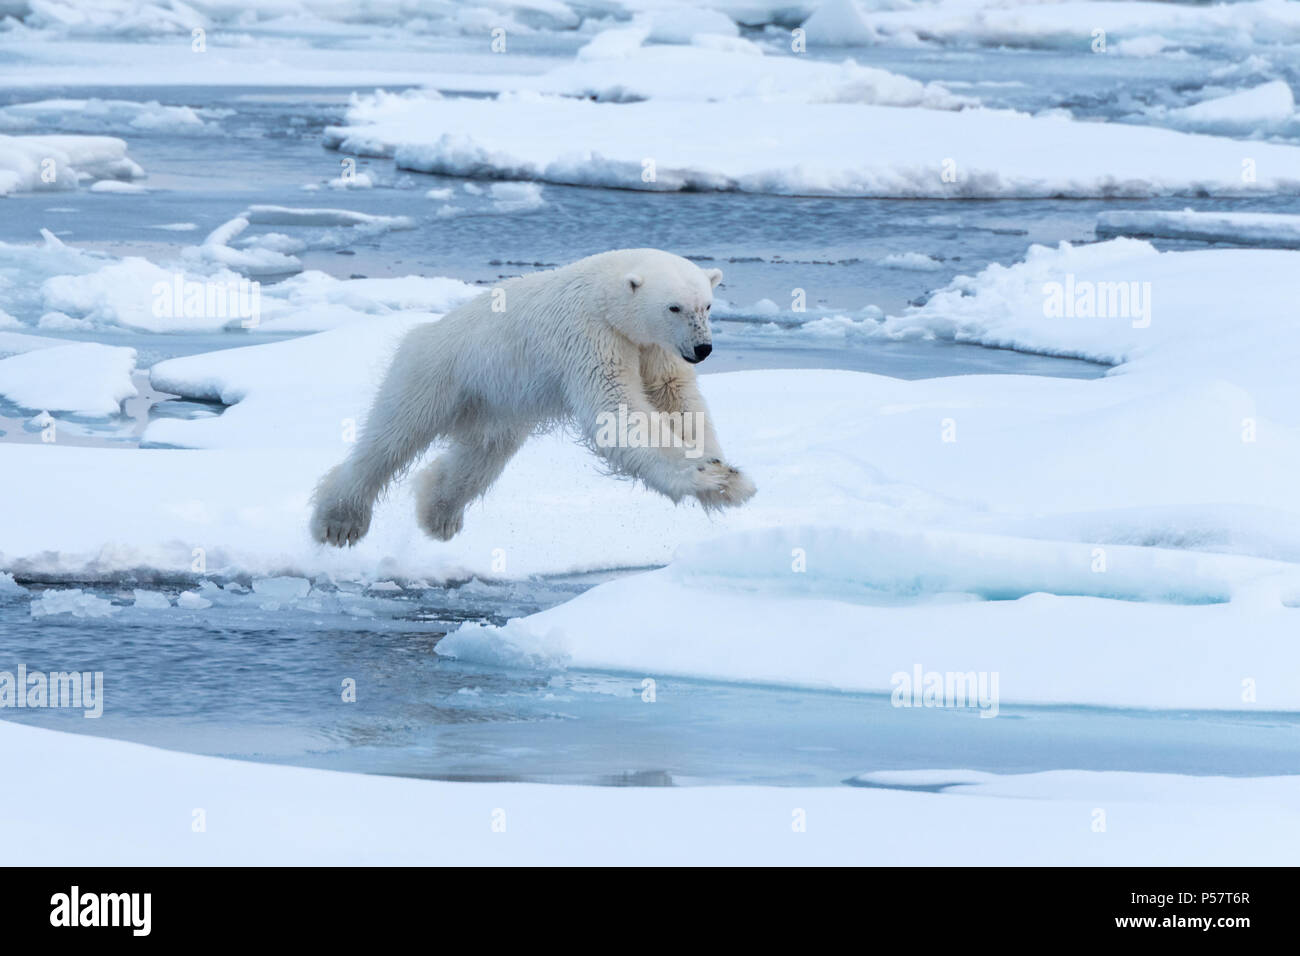 Orso polare jumping tra ice floes Immagini Stock